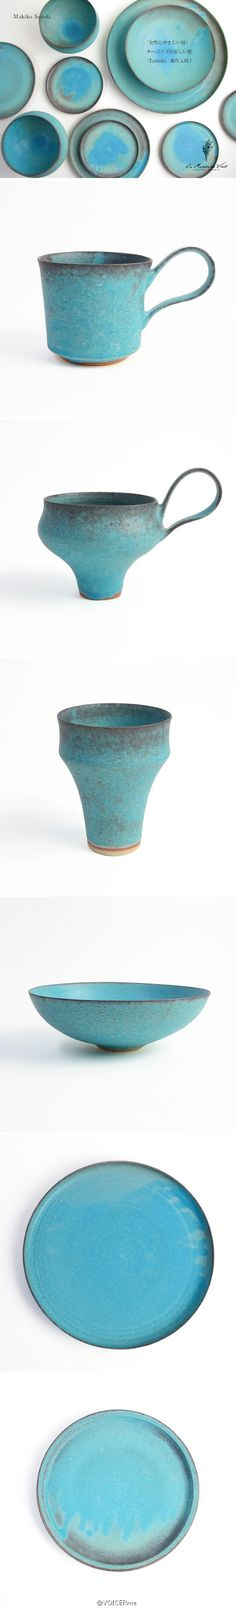 makiko suzuki, never thought i'd like this sort of handle to cup proportion, but these are stunning